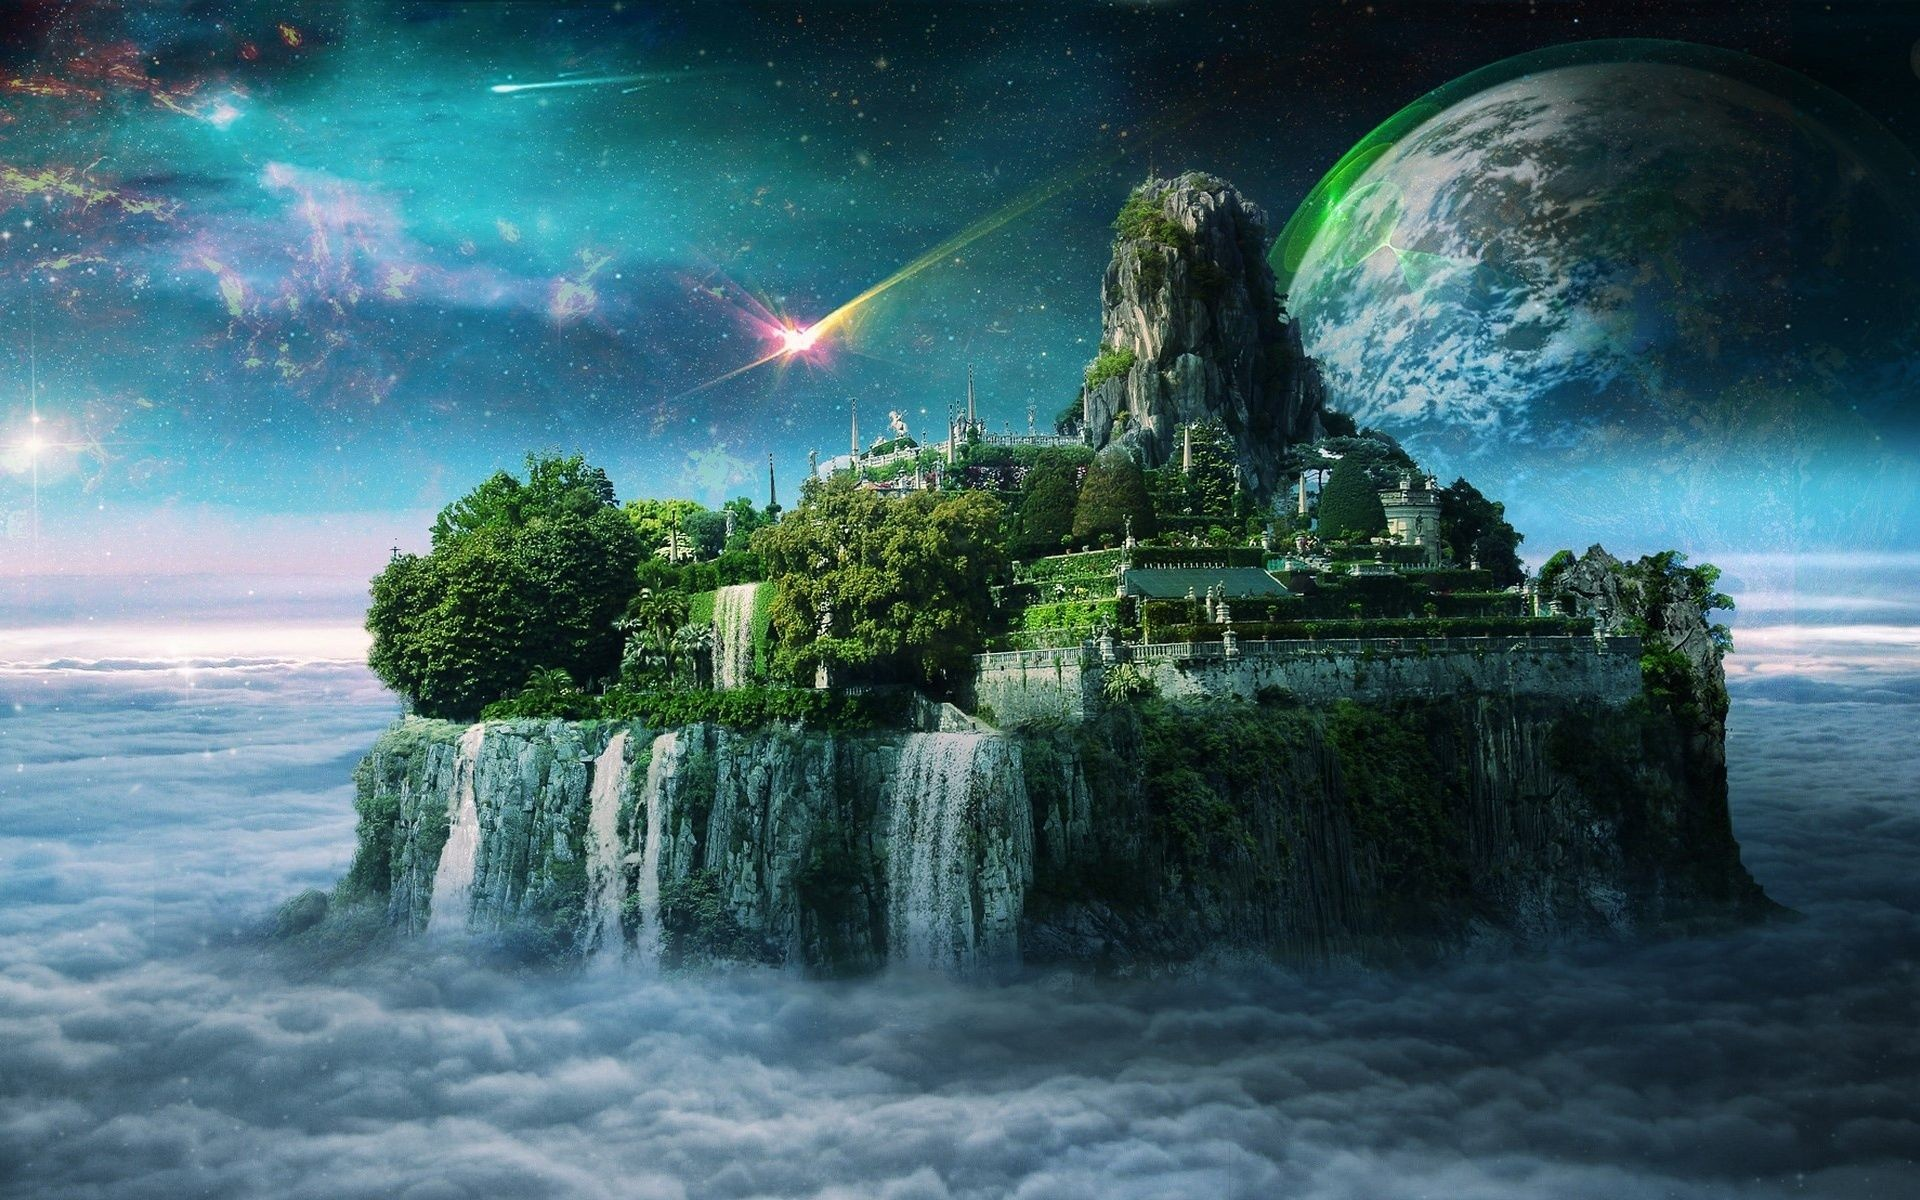 fantasy world backgrounds (71+ pictures)